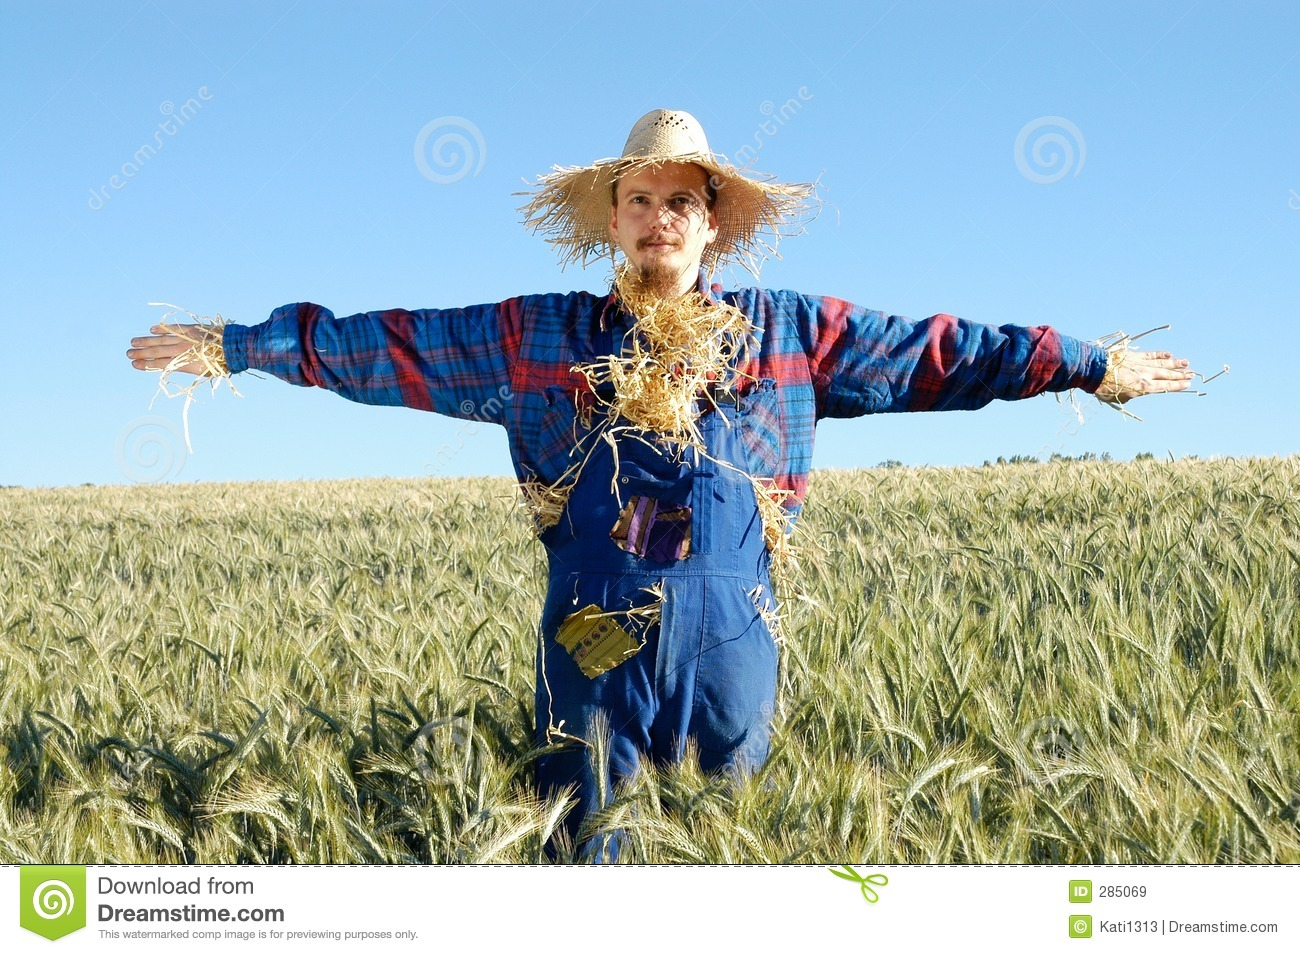 http://thumbs.dreamstime.com/z/human-scarecrow-285069.jpg